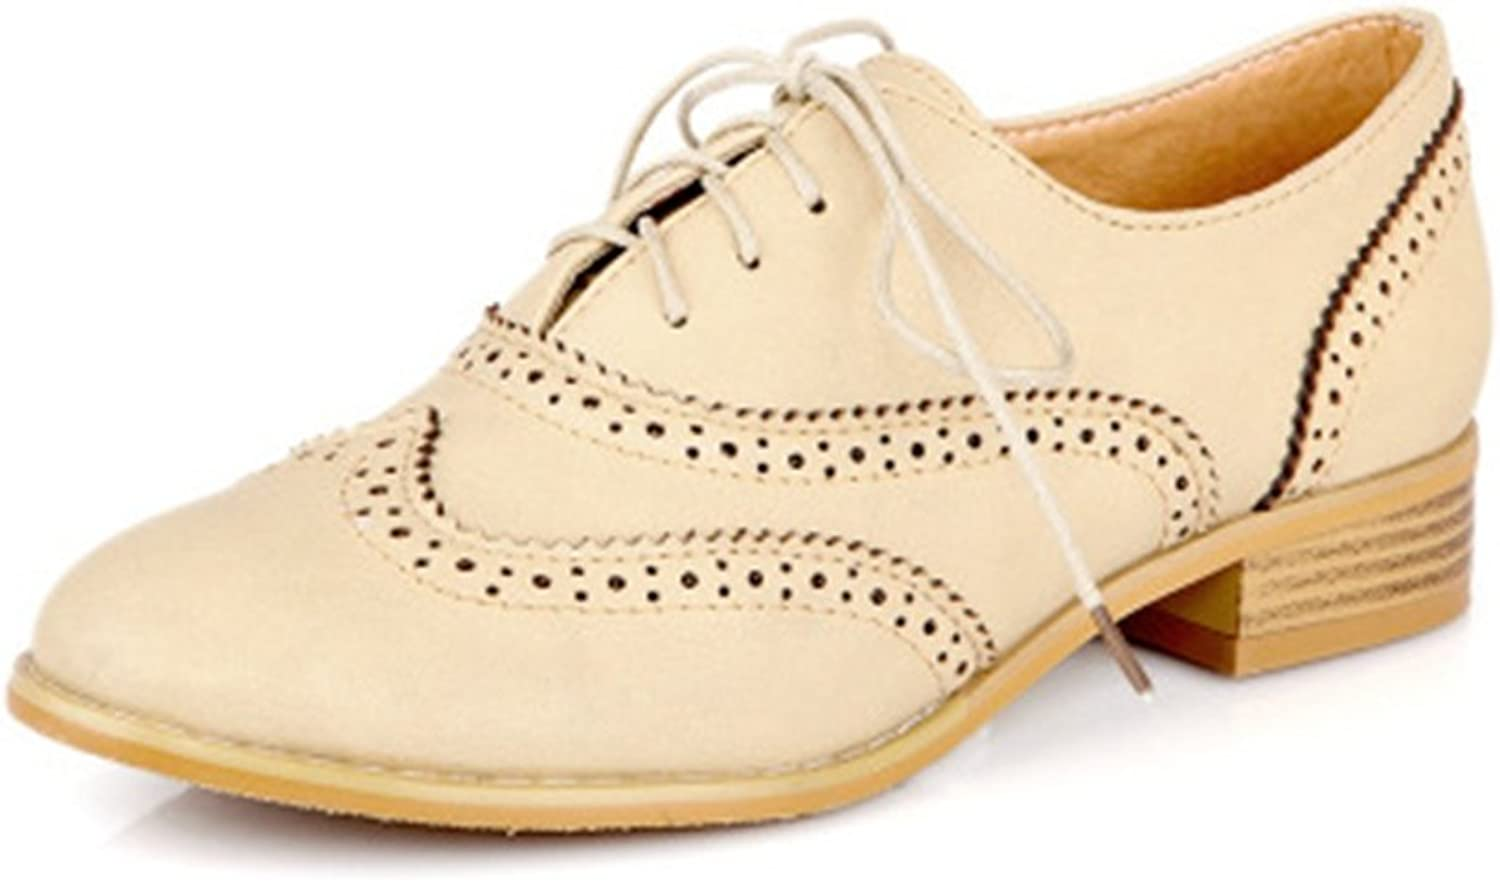 T-JULY Women's Wingtip Oxfords shoes - Comfortable Vintage Round Toe Low Heel Retro shoes